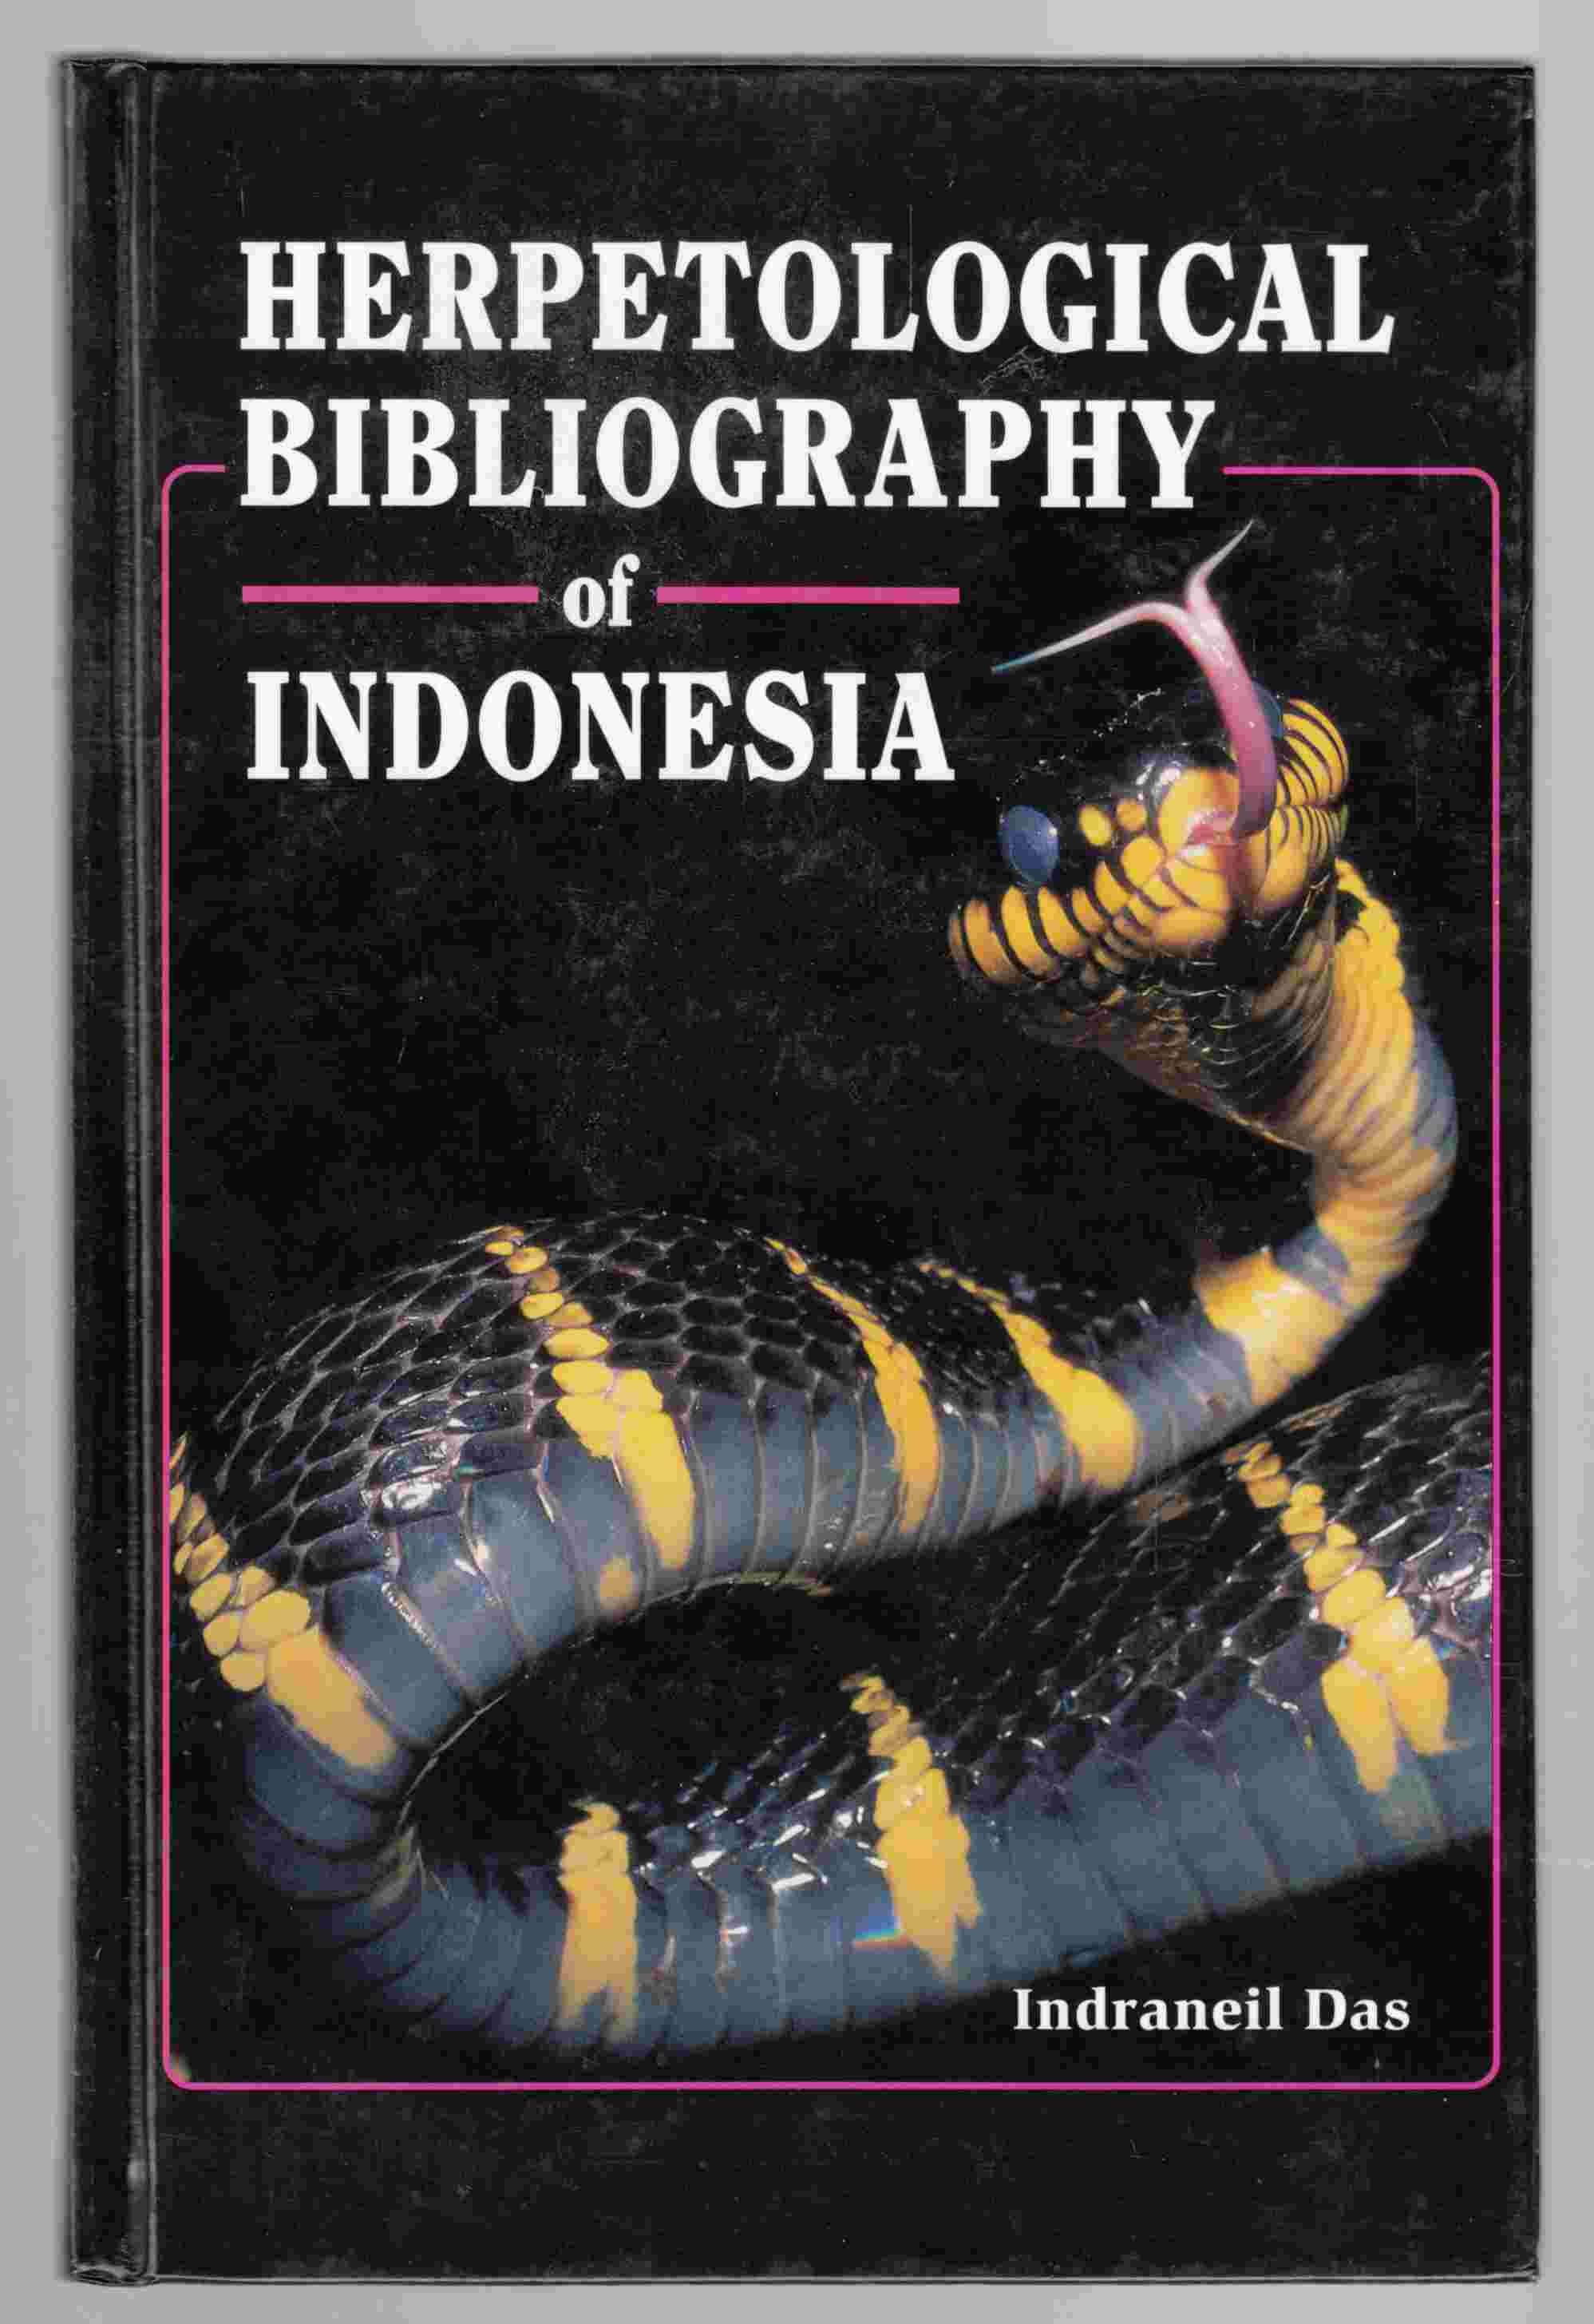 Image for Herpetological Bibliography of Indonesia